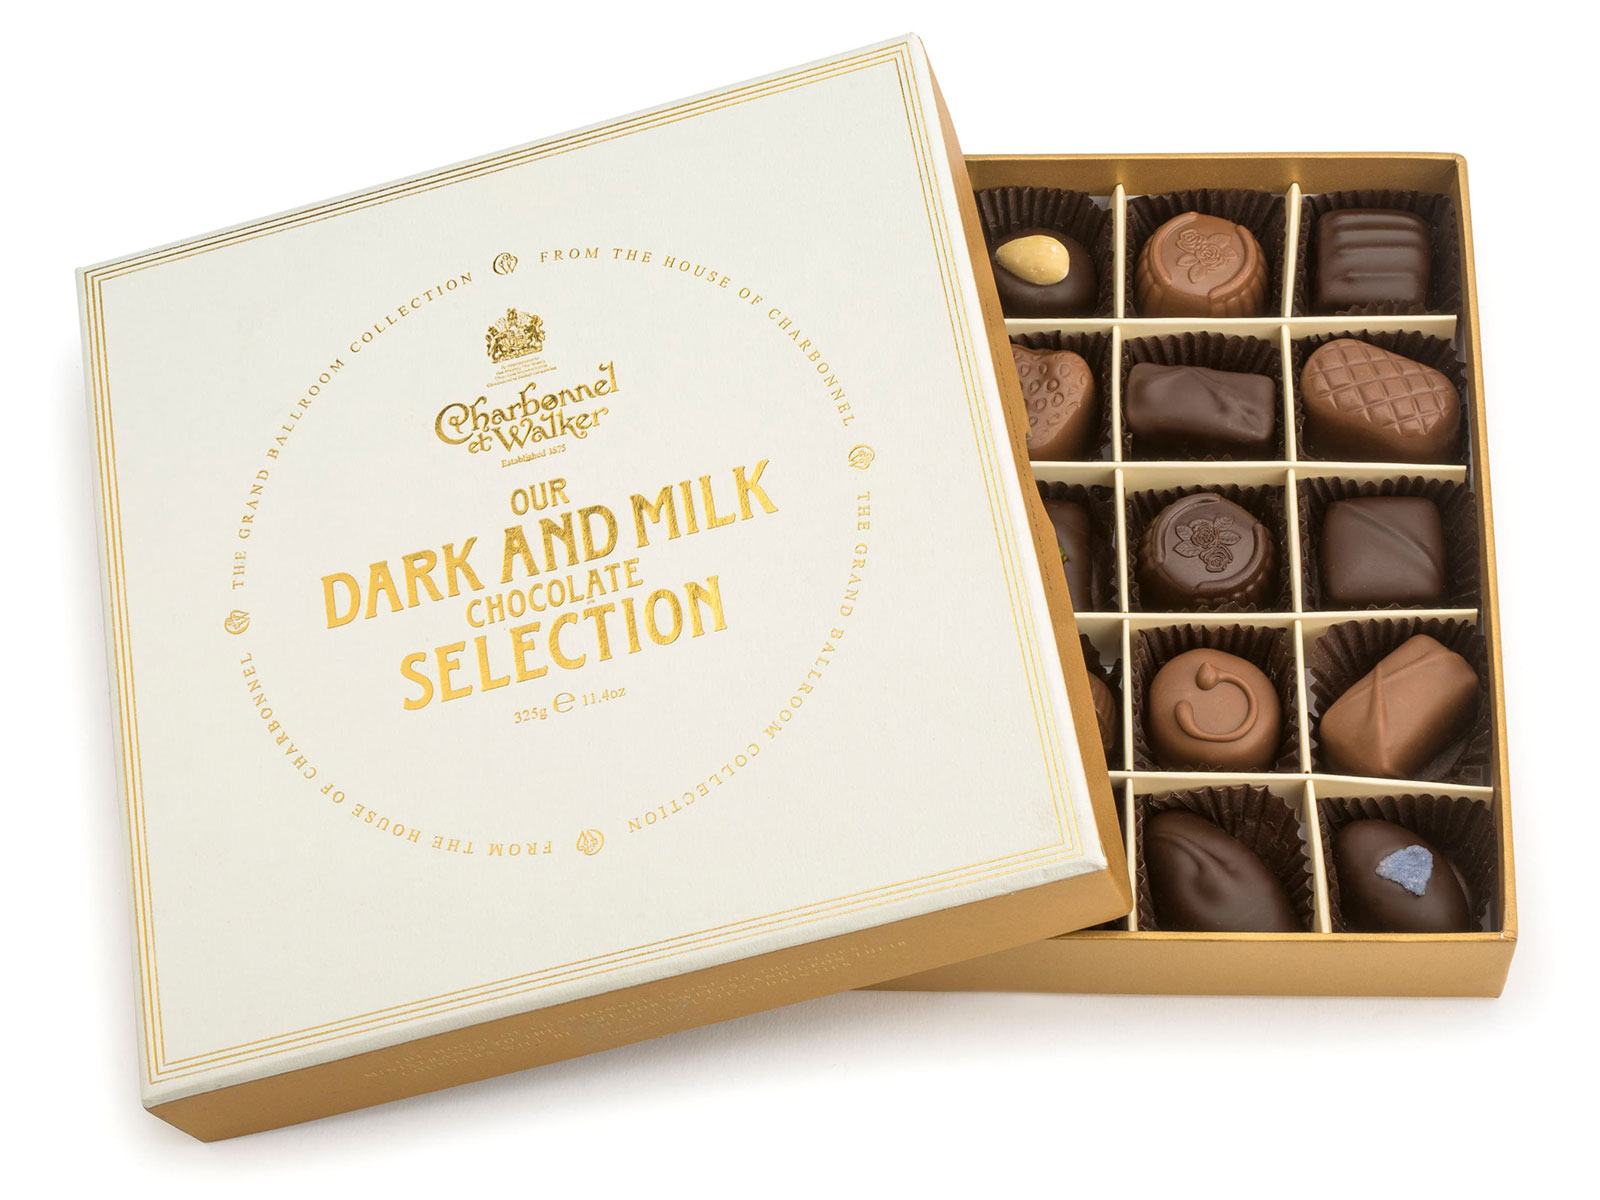 dark and milk chocolates